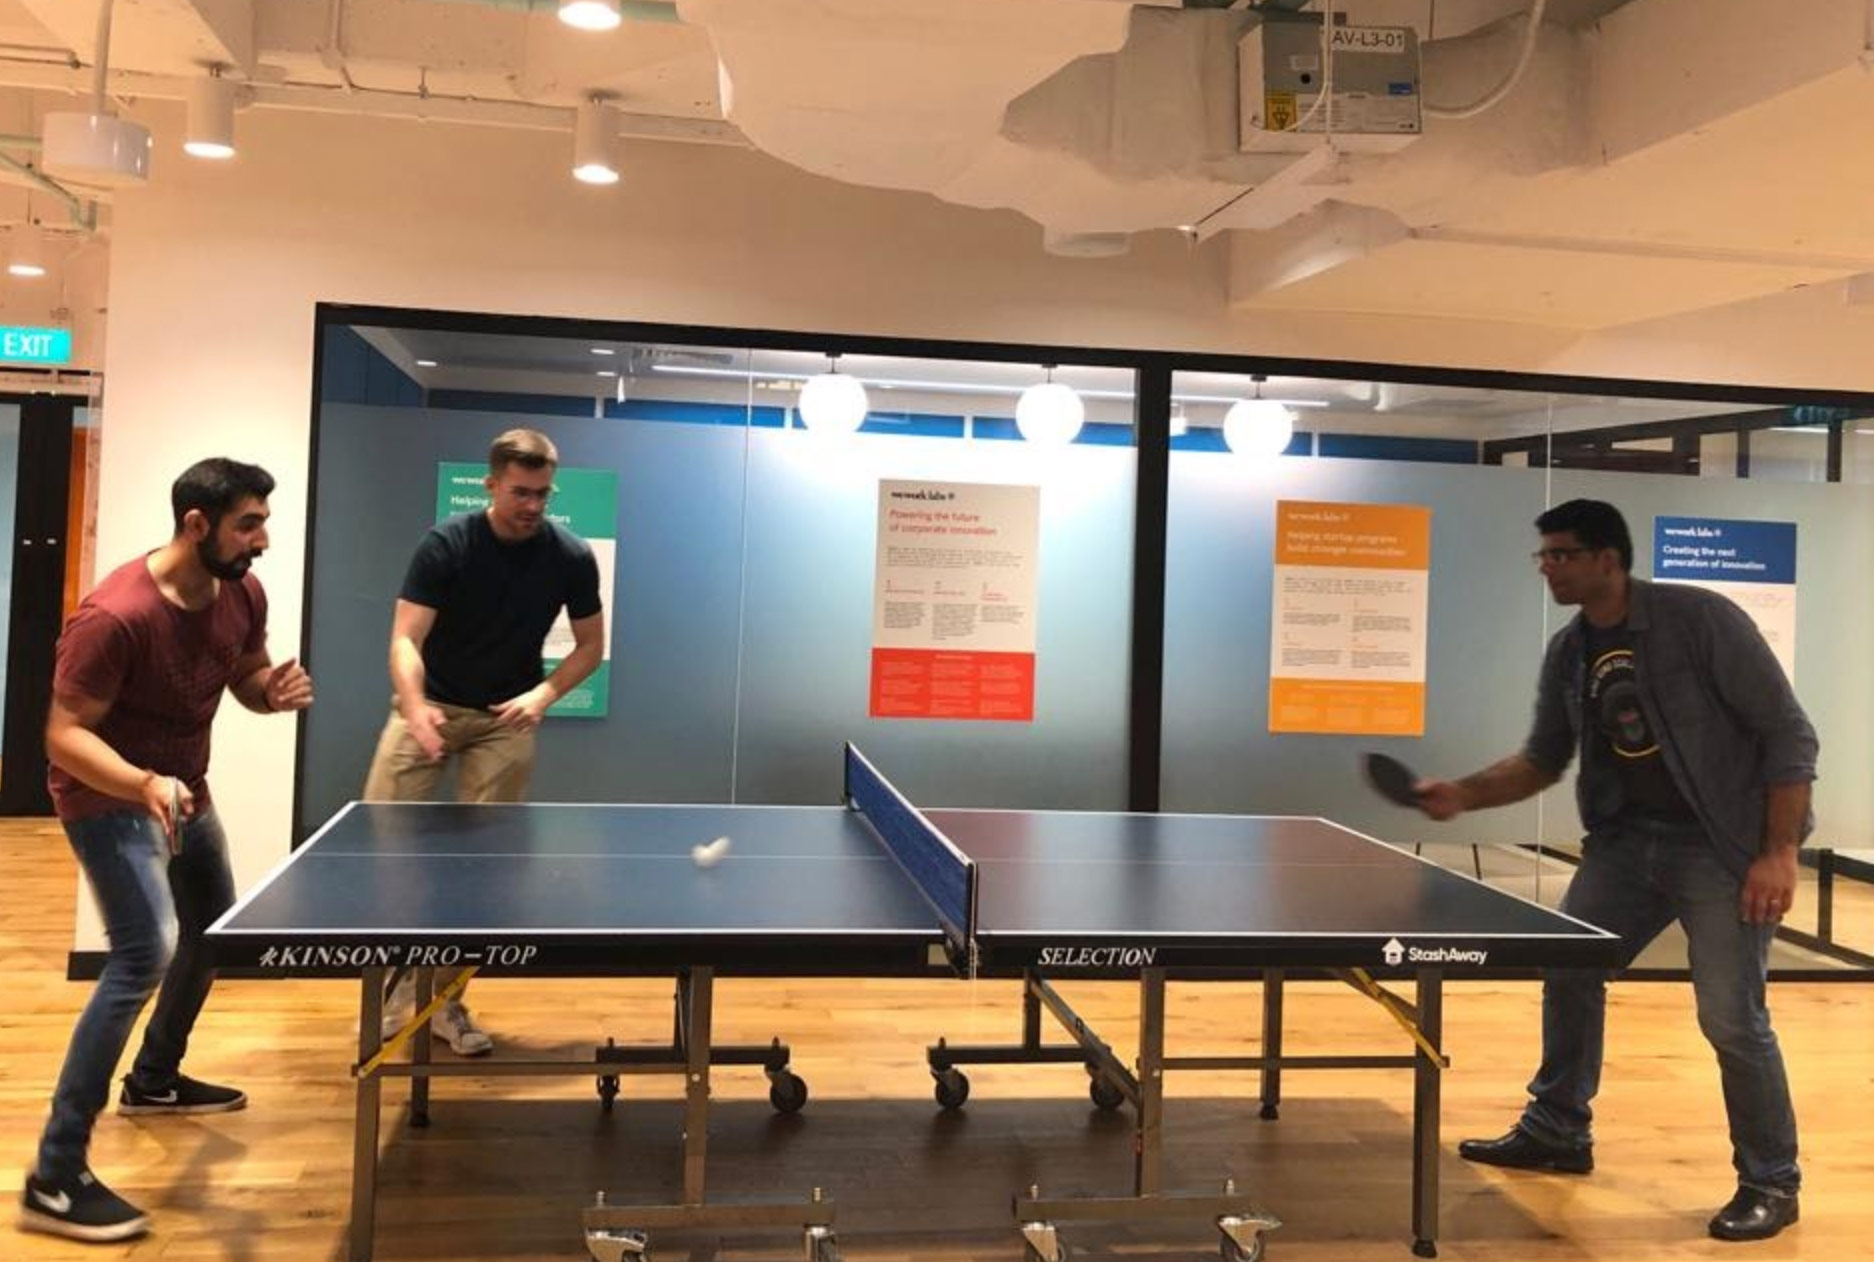 Table Tennis matches – a usual sight on Friday evenings